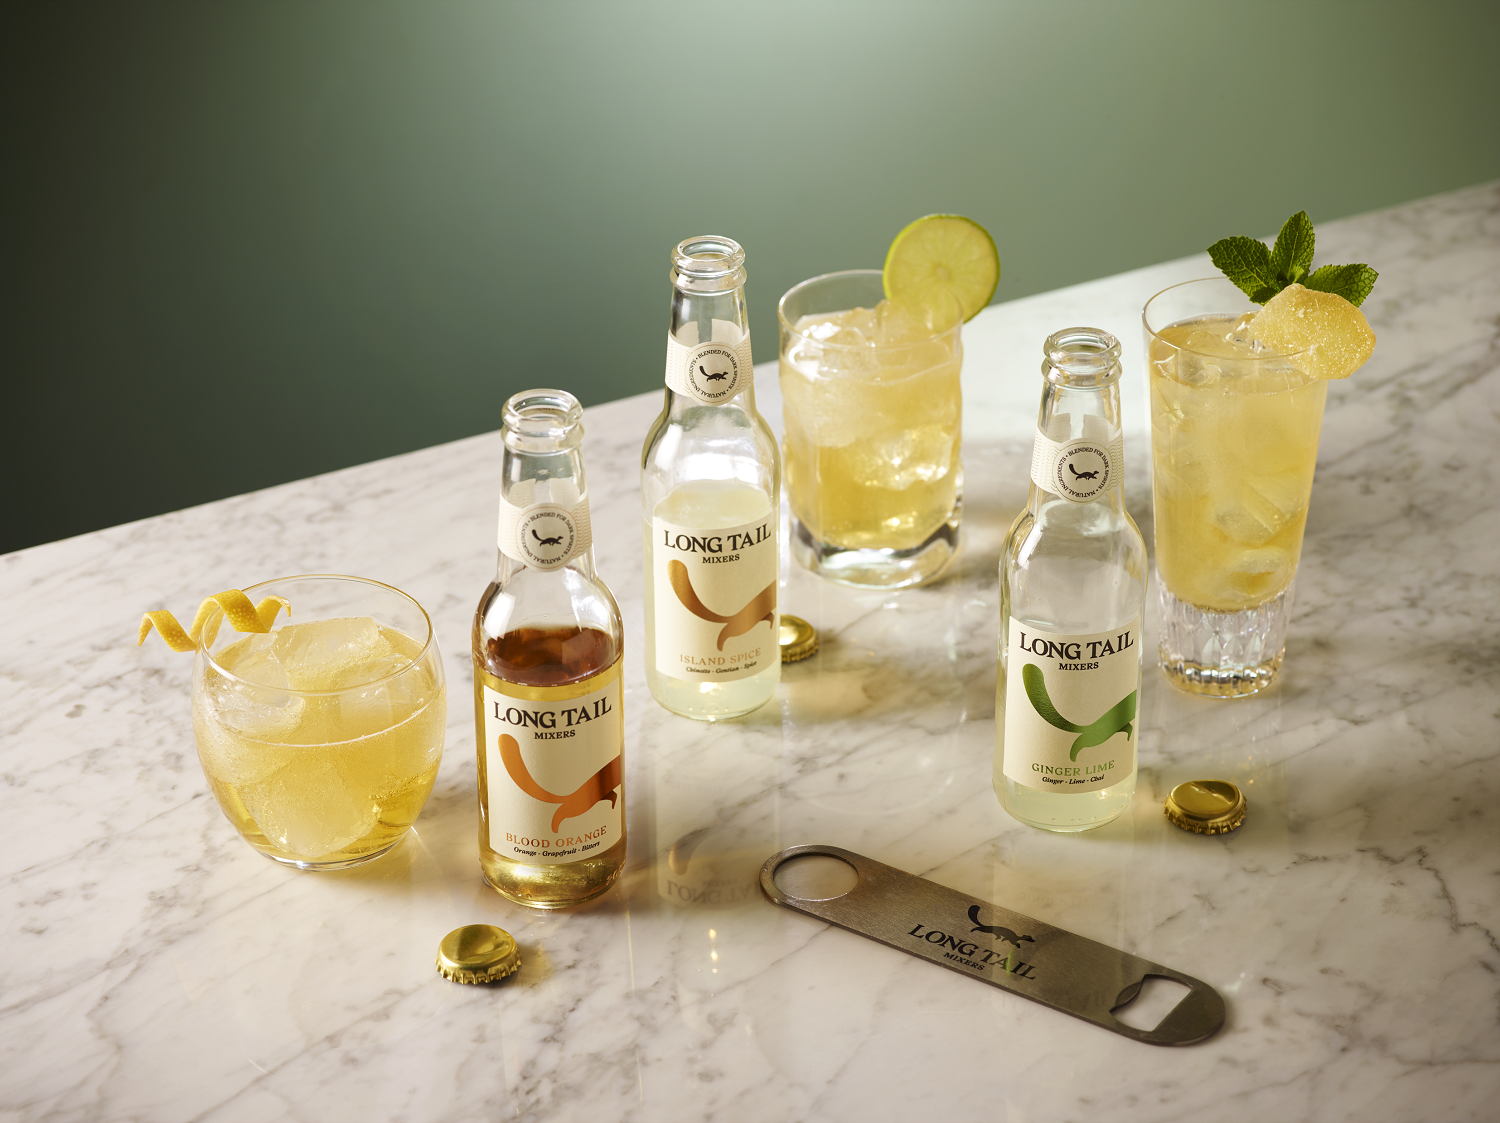 The Spirits Business - Long Tail Mixers secures Selfridges listing…read more